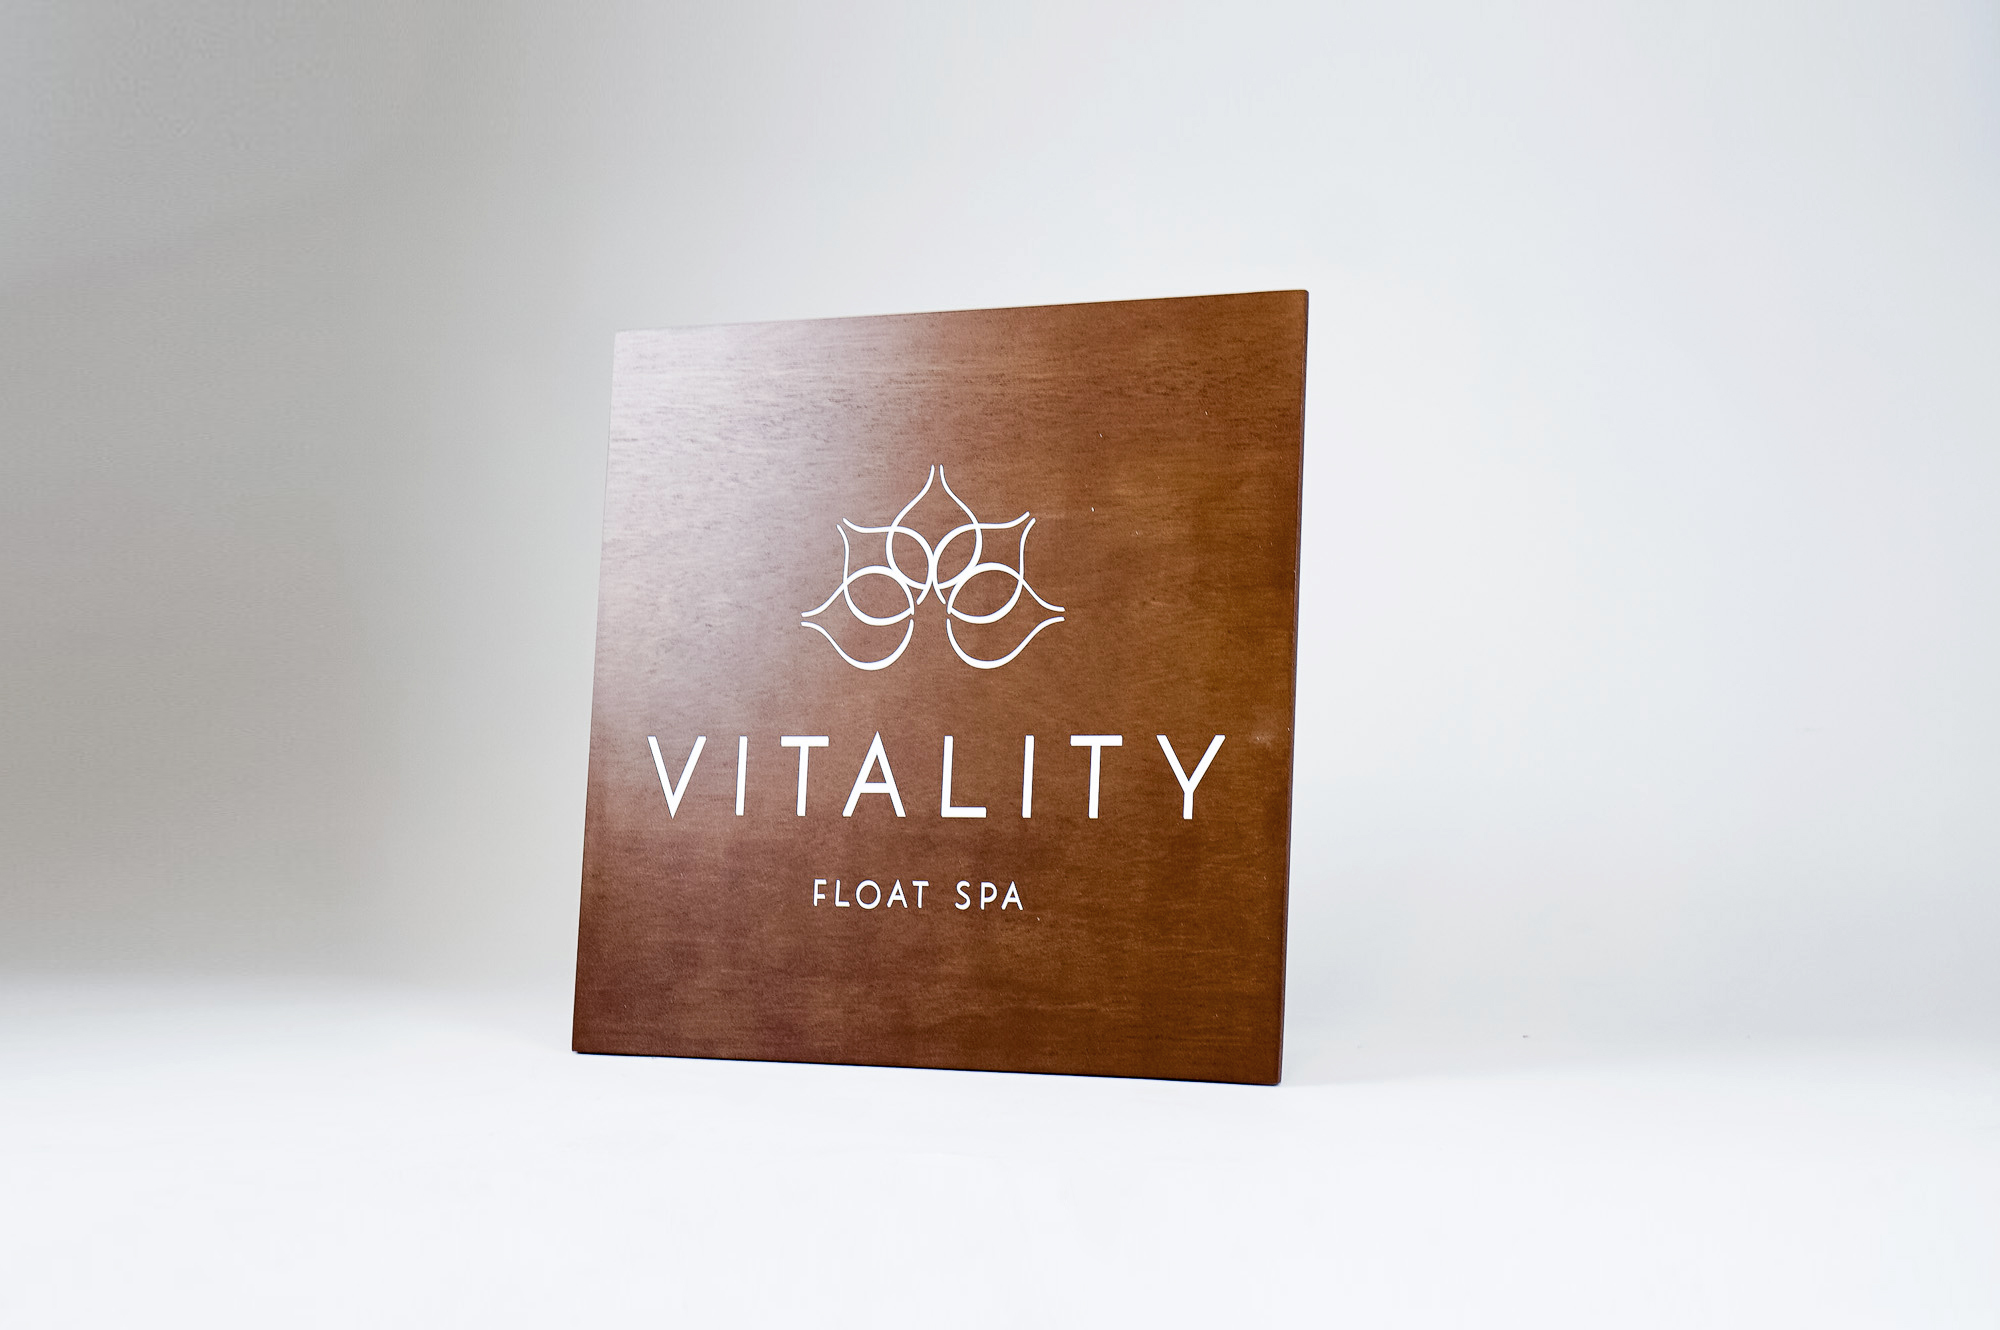 Dark wood retail blade sign with white artwork for Vitality, a massage therapy and wellness studio located in Carytown, Virginia.